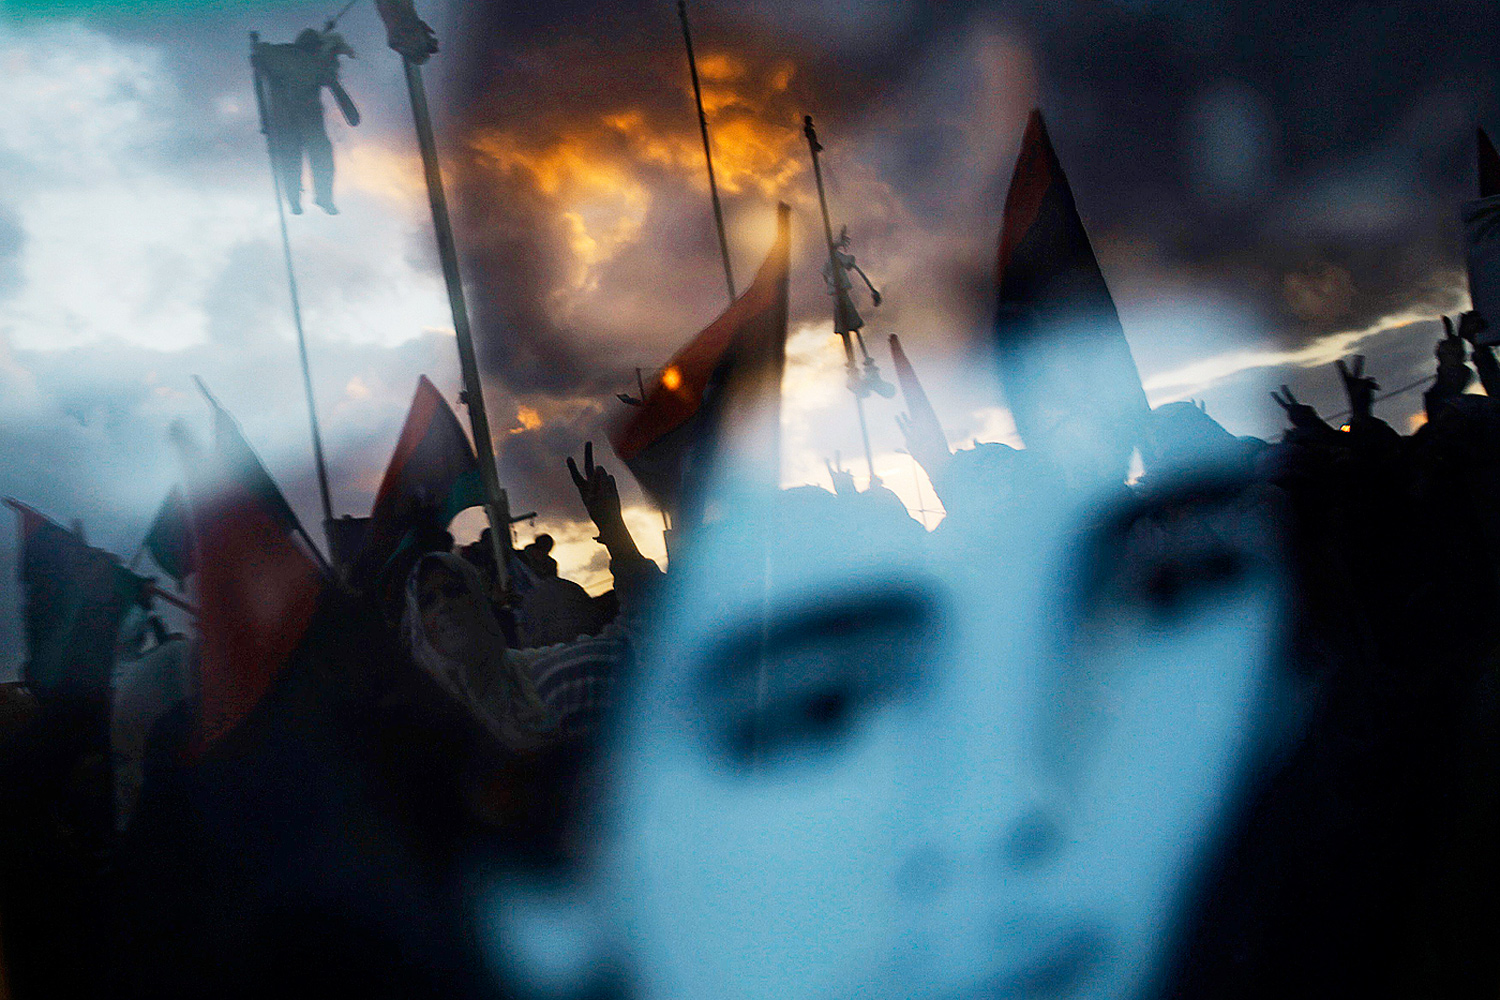 March 6, 2011. Anti-Gaddafi protesters hanging effigies of Libyan leader Muammar Gaddafi are reflected in a photo of a youth who was killed in clashes in Benghazi.